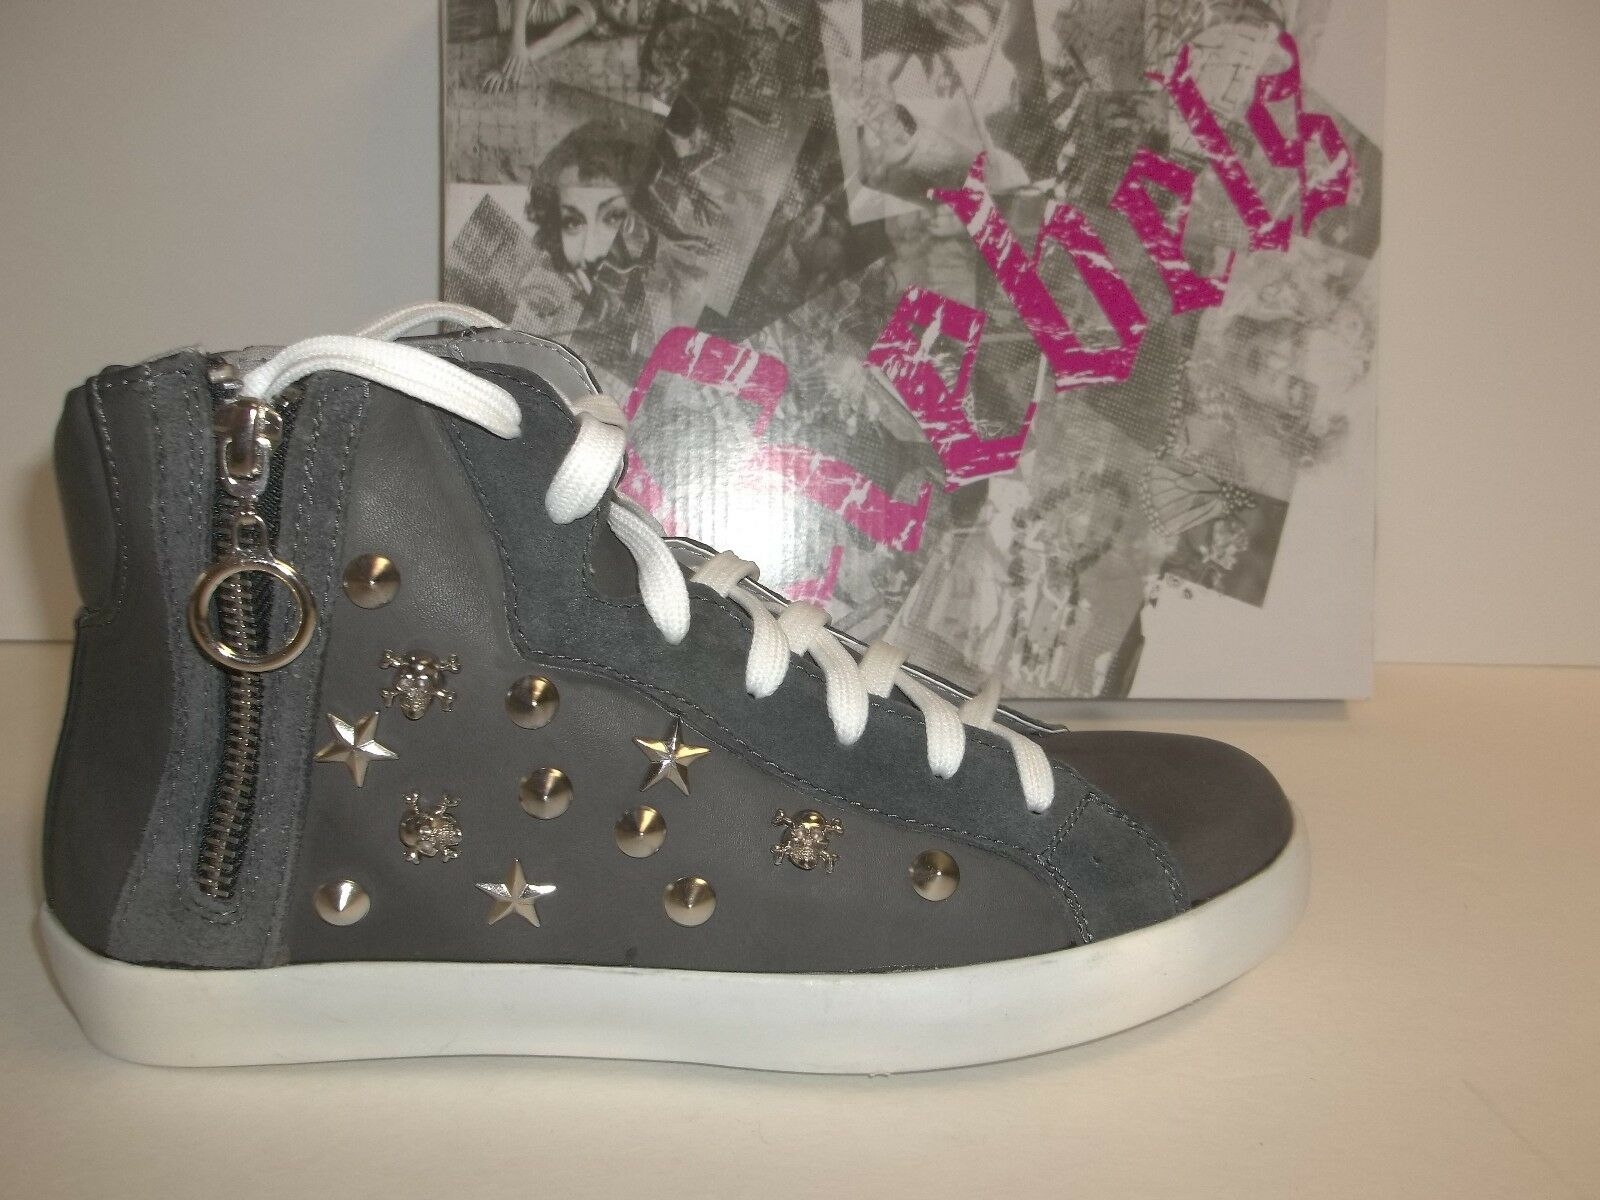 Rebels Size 7.5 M Cash Black High Top Sneakers New Womens shoes